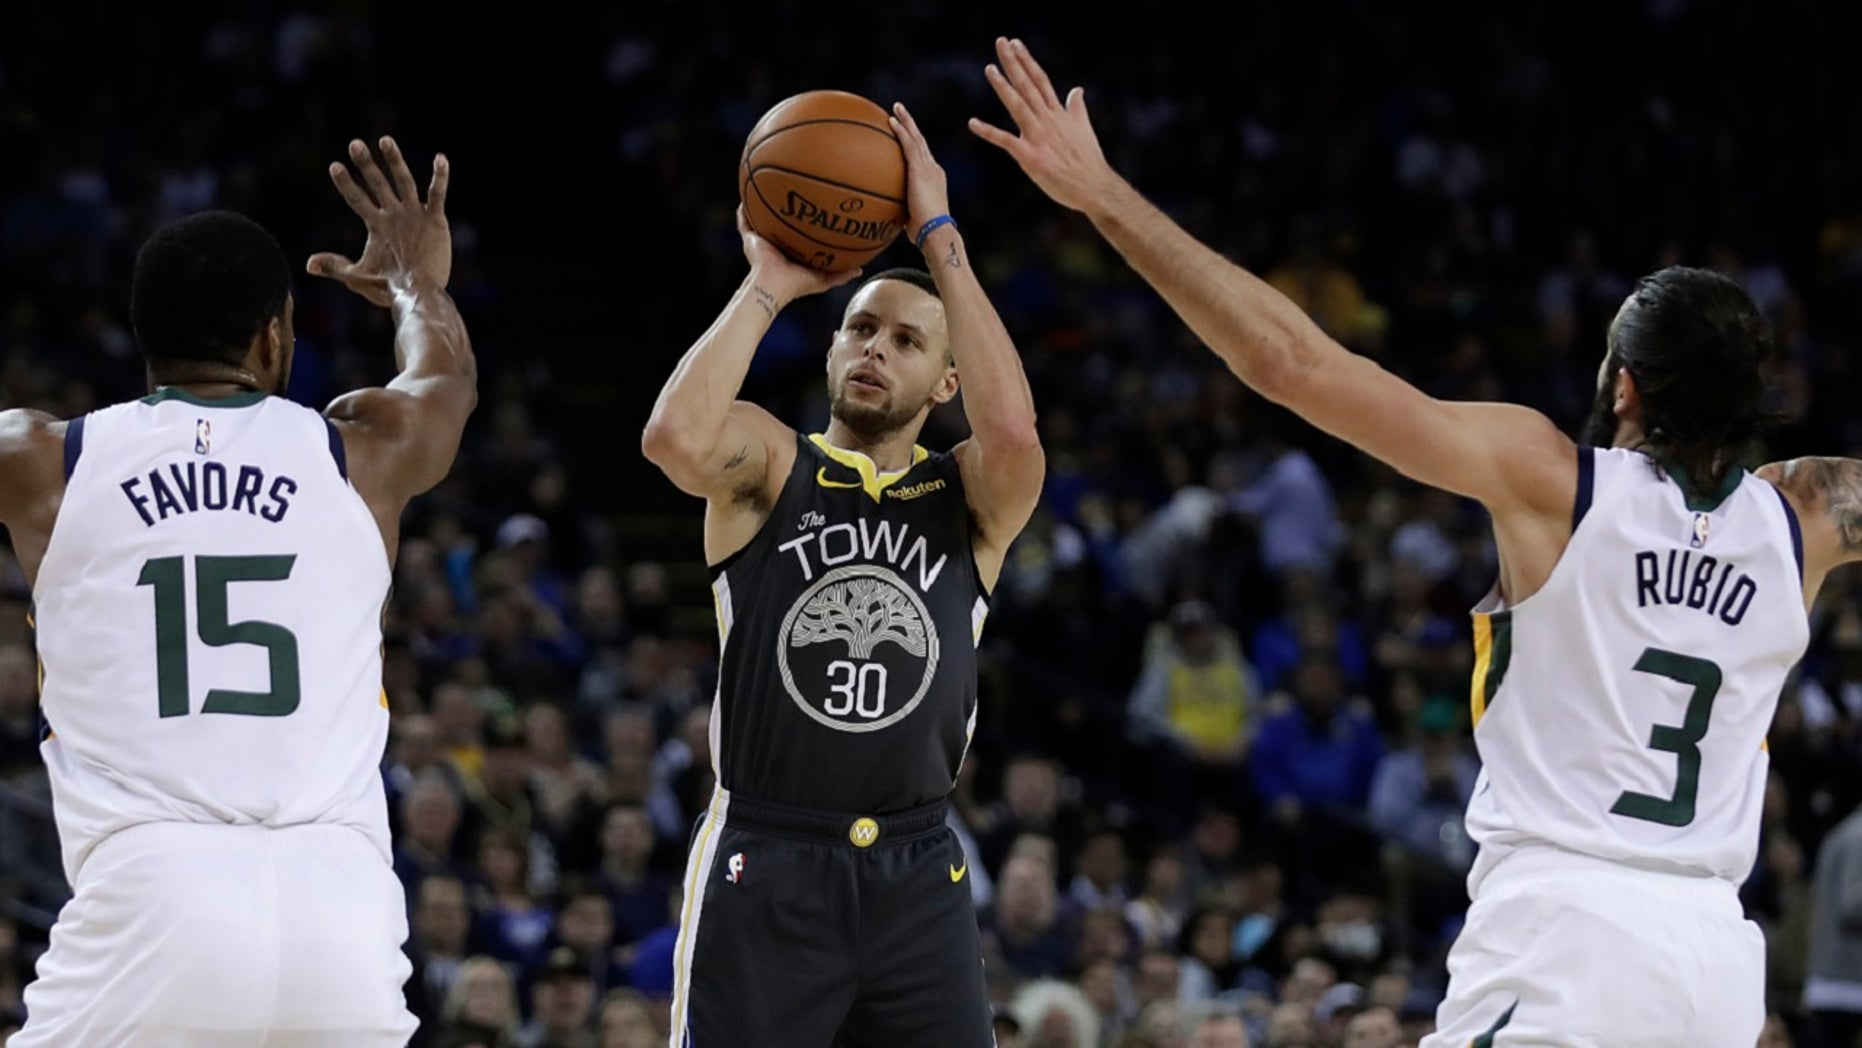 Golden State Warriors' Stephen Curry, center, shoots between Utah Jazz's Derrick Favors (15) and Ricky Rubio (3) during the second half of an NBA basketball game Tuesday, Feb. 12, 2019, in Oakland, Calif. (Associated Press)